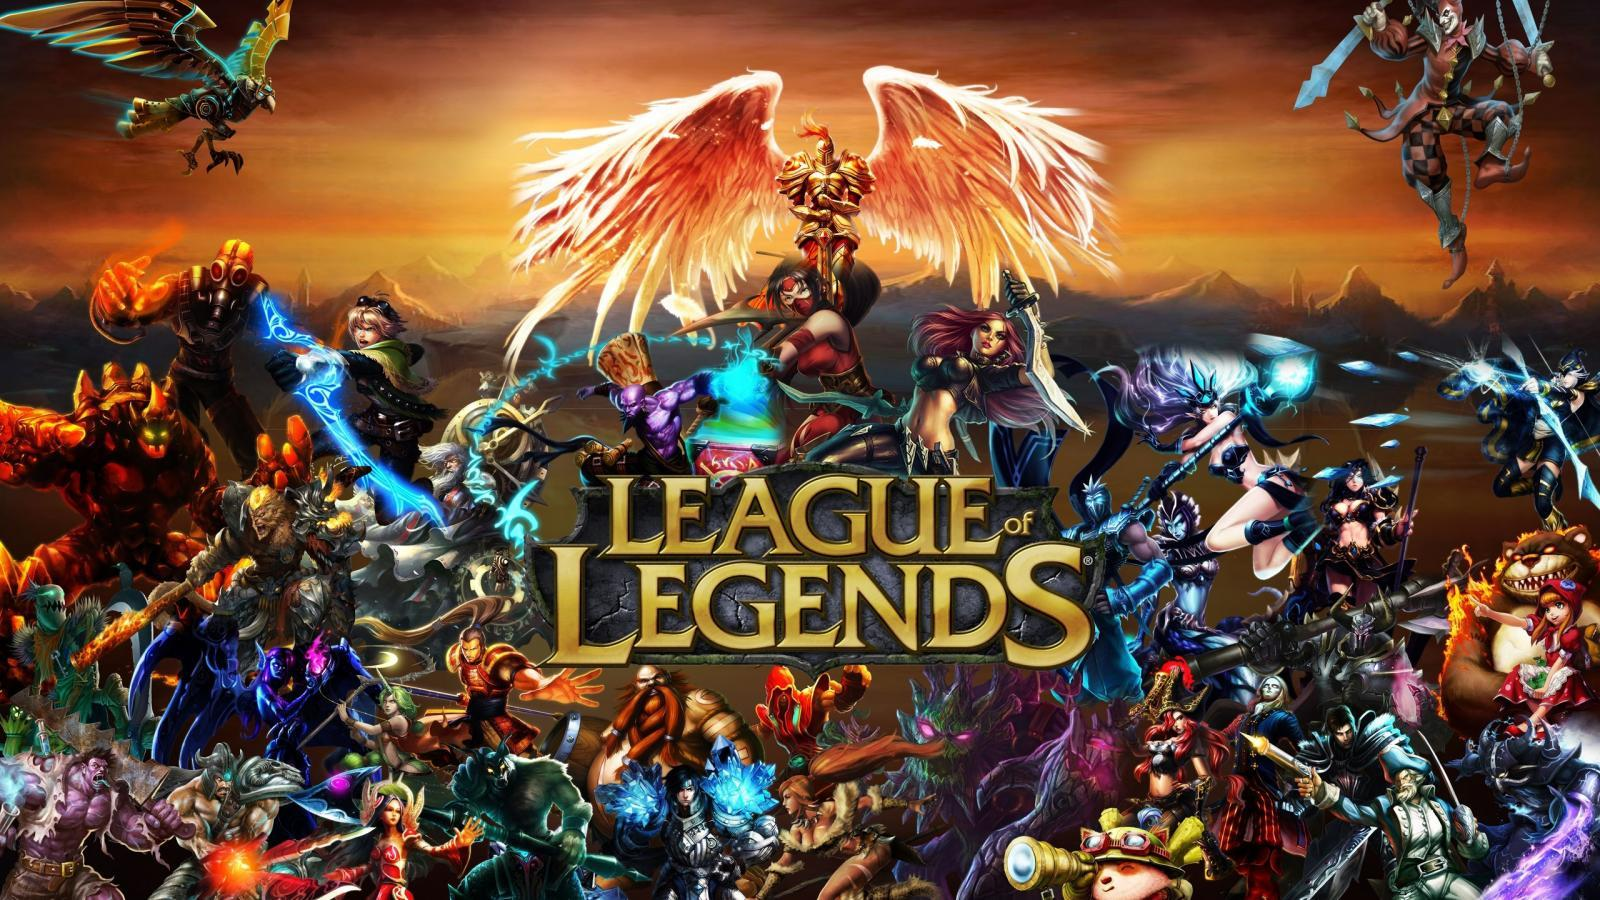 Exploraţi satul League of Legends în cadrul East European Comic Con 2016